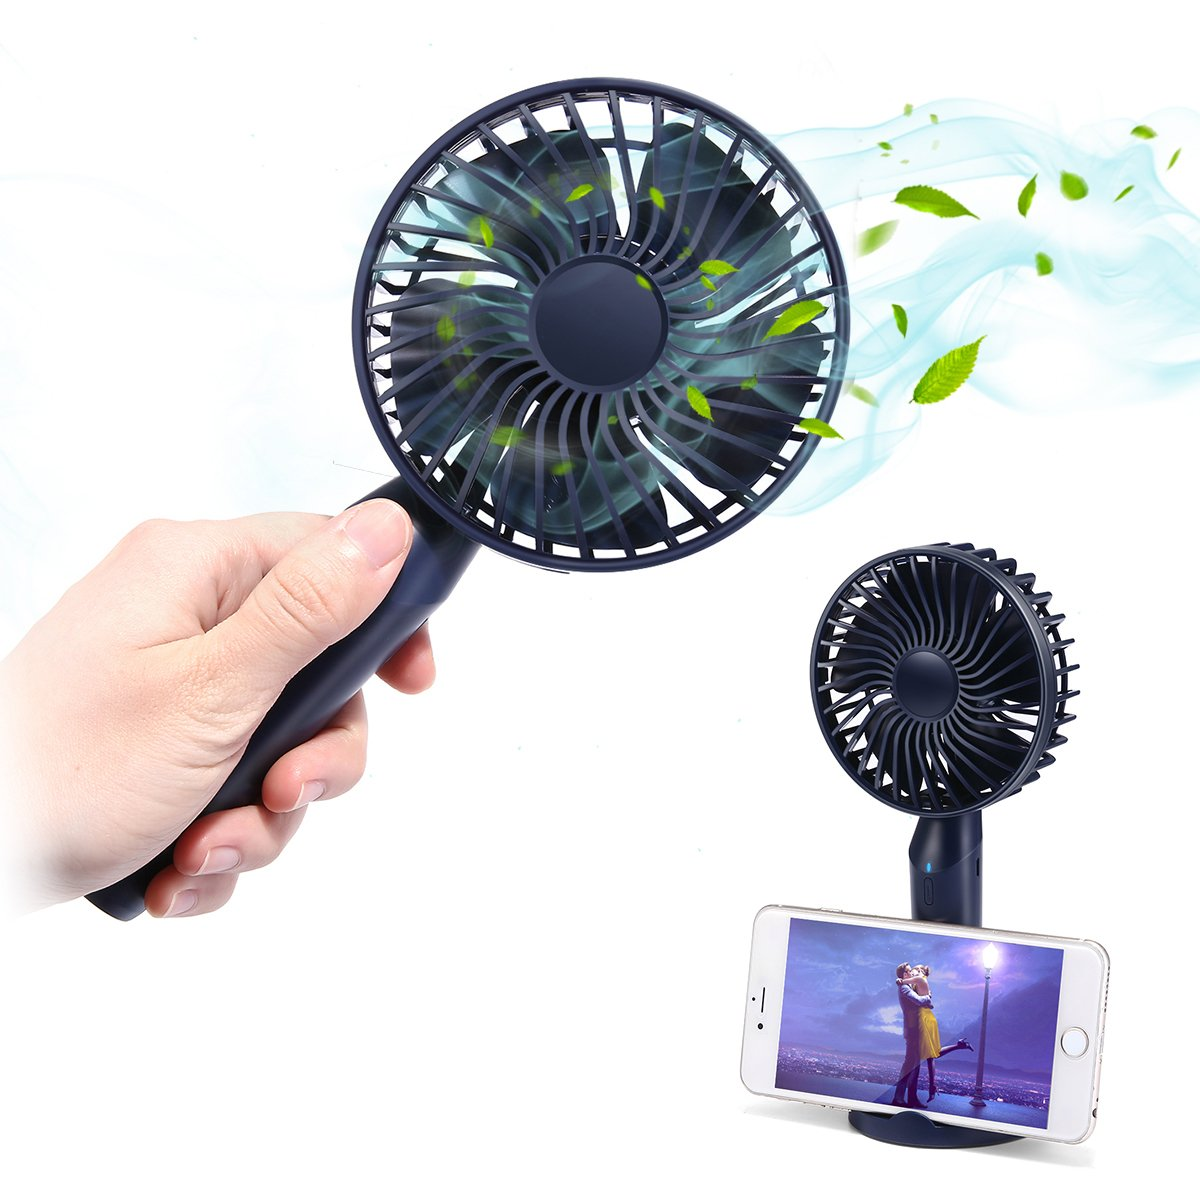 Mini Handheld Fan, MECO Portable Operated Fan Desktop Fan Outdoor Electric Fan with Phone Holder Aromatherapy Design 3 Speeds for Home Office Outdoors Travel-Newest 2018